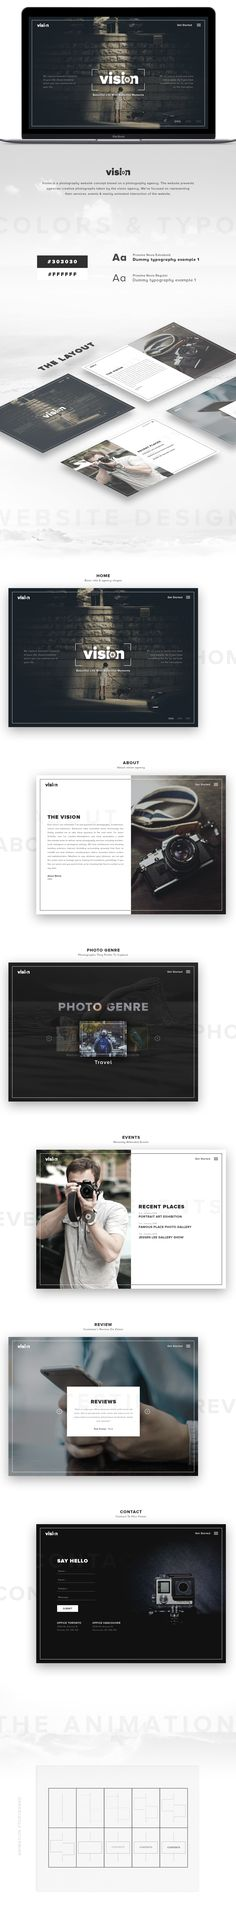 Vision is a photography website concept based on a photography agency. The website presents agencies creative photographs taken by the vision agency, We've focused on representing their services, events & mainly animated interaction of the website.